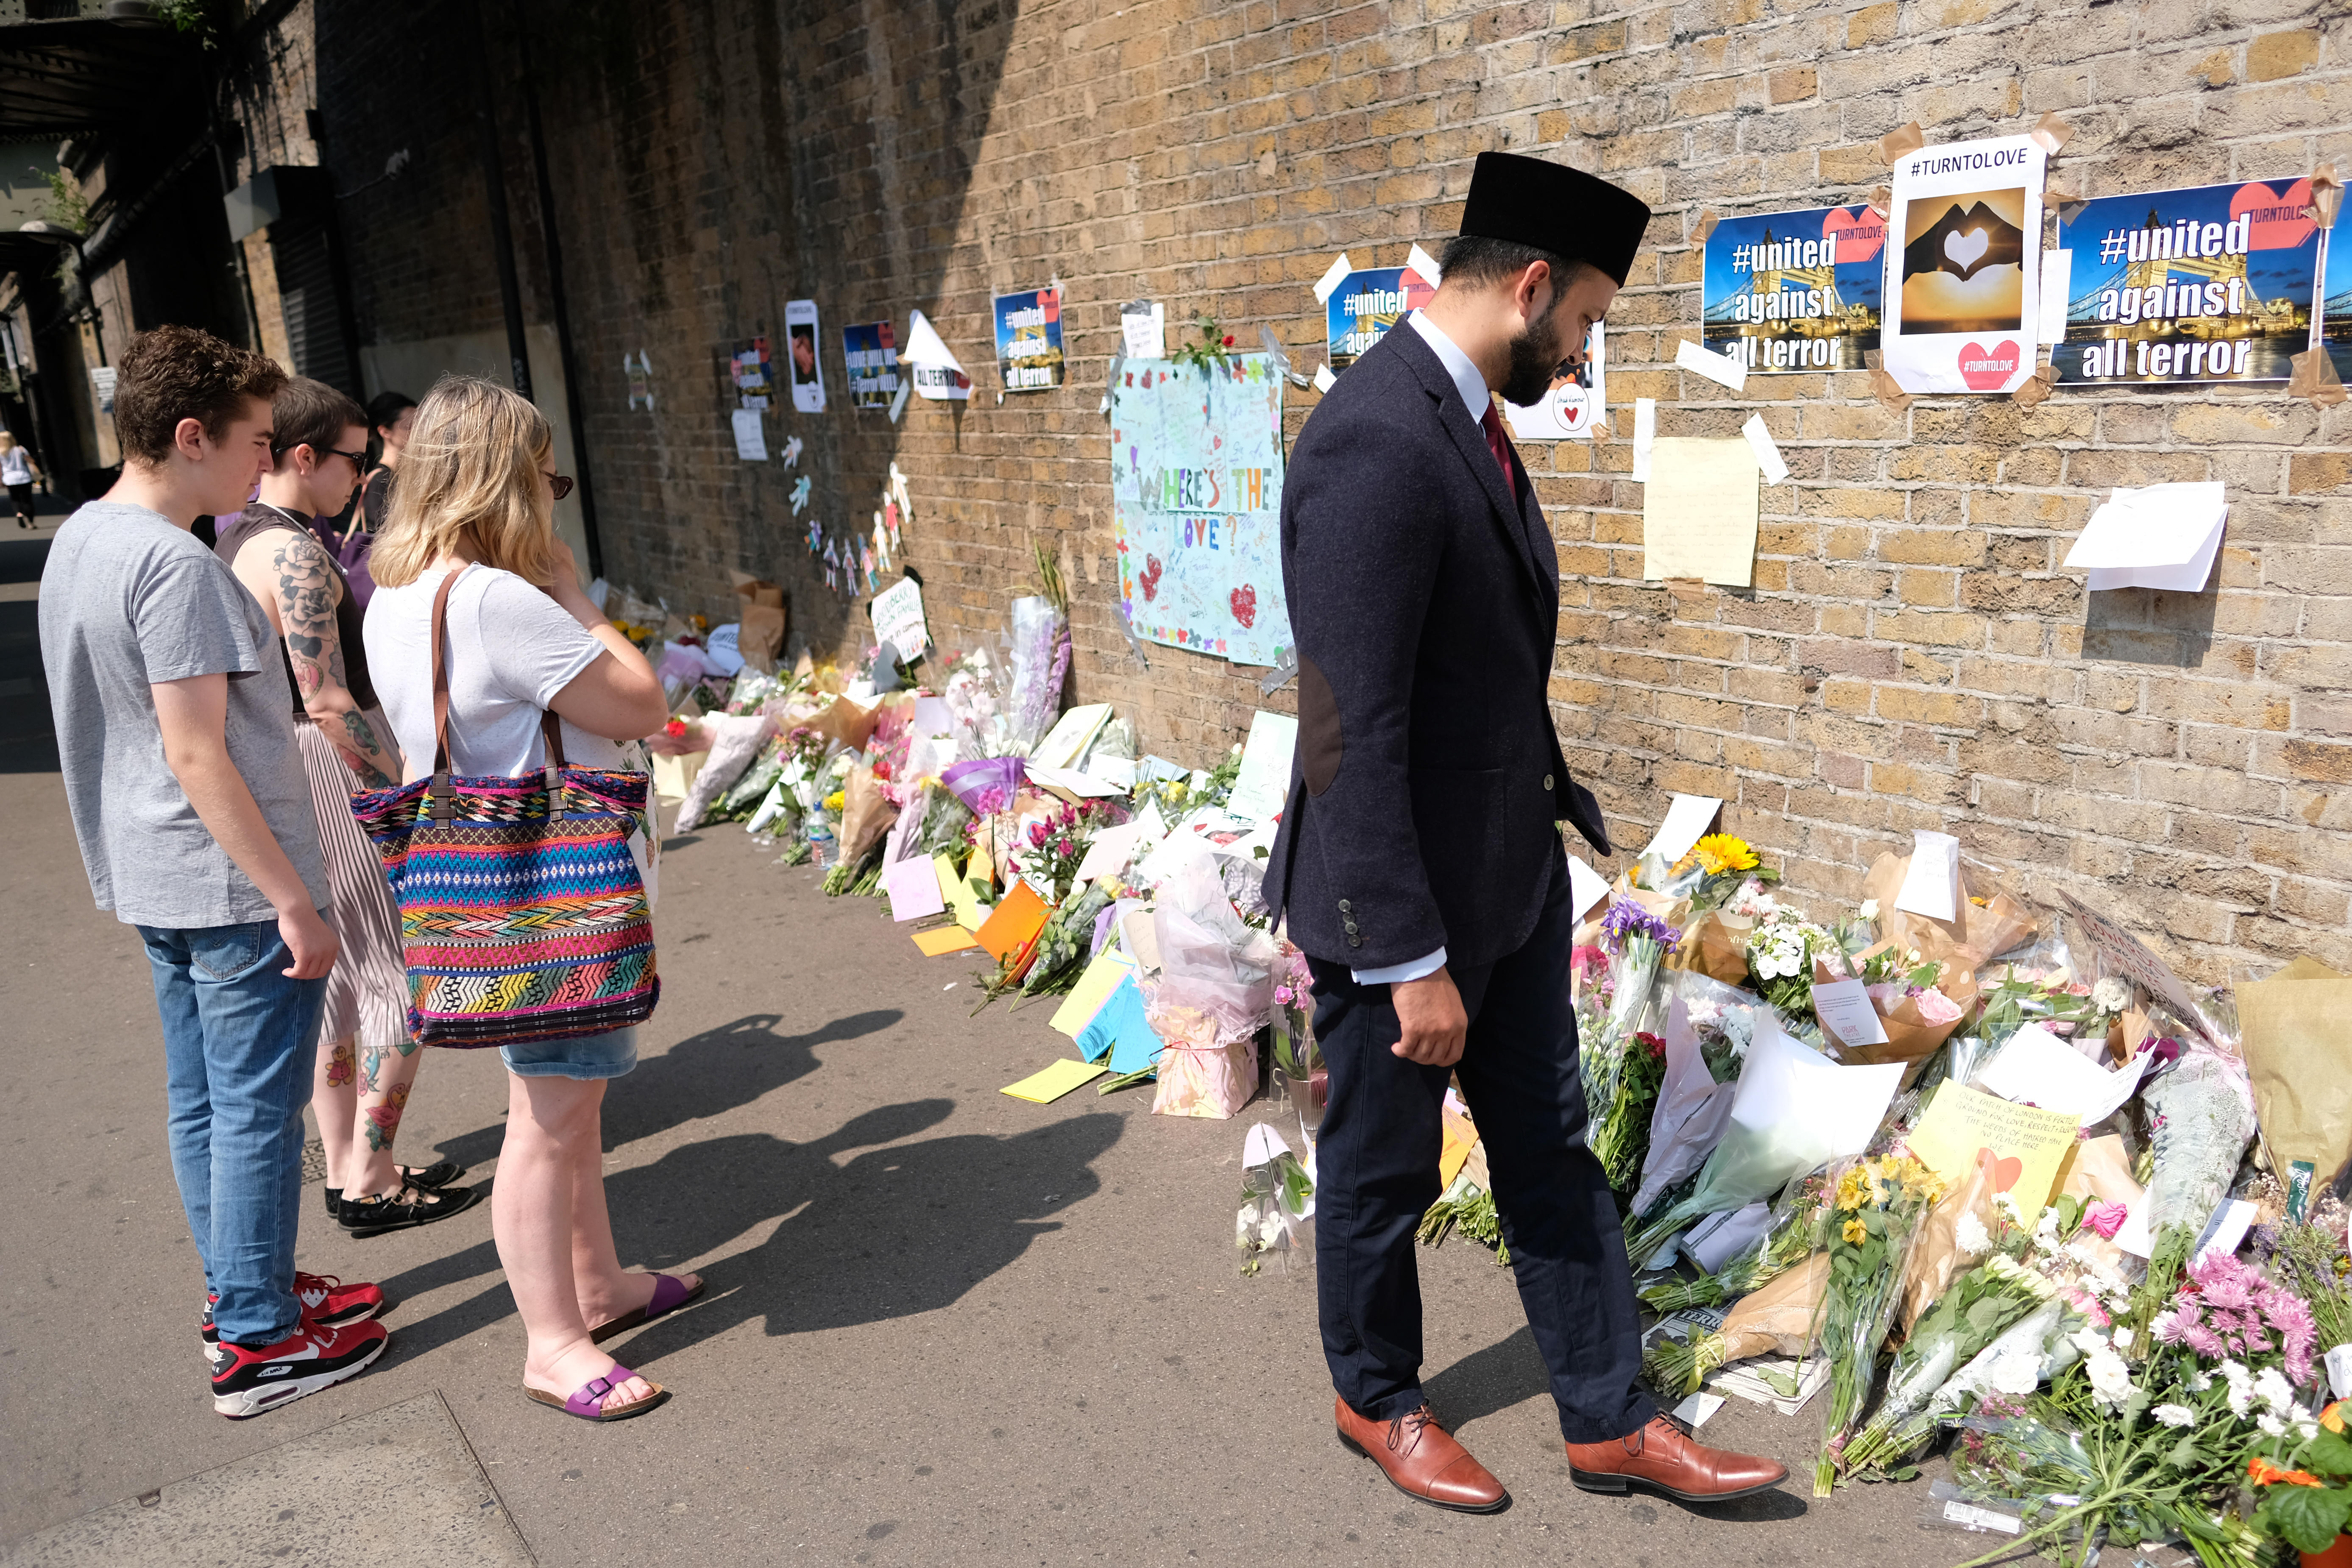 Aftermath Of The Finsbury Park Terrorist Attack